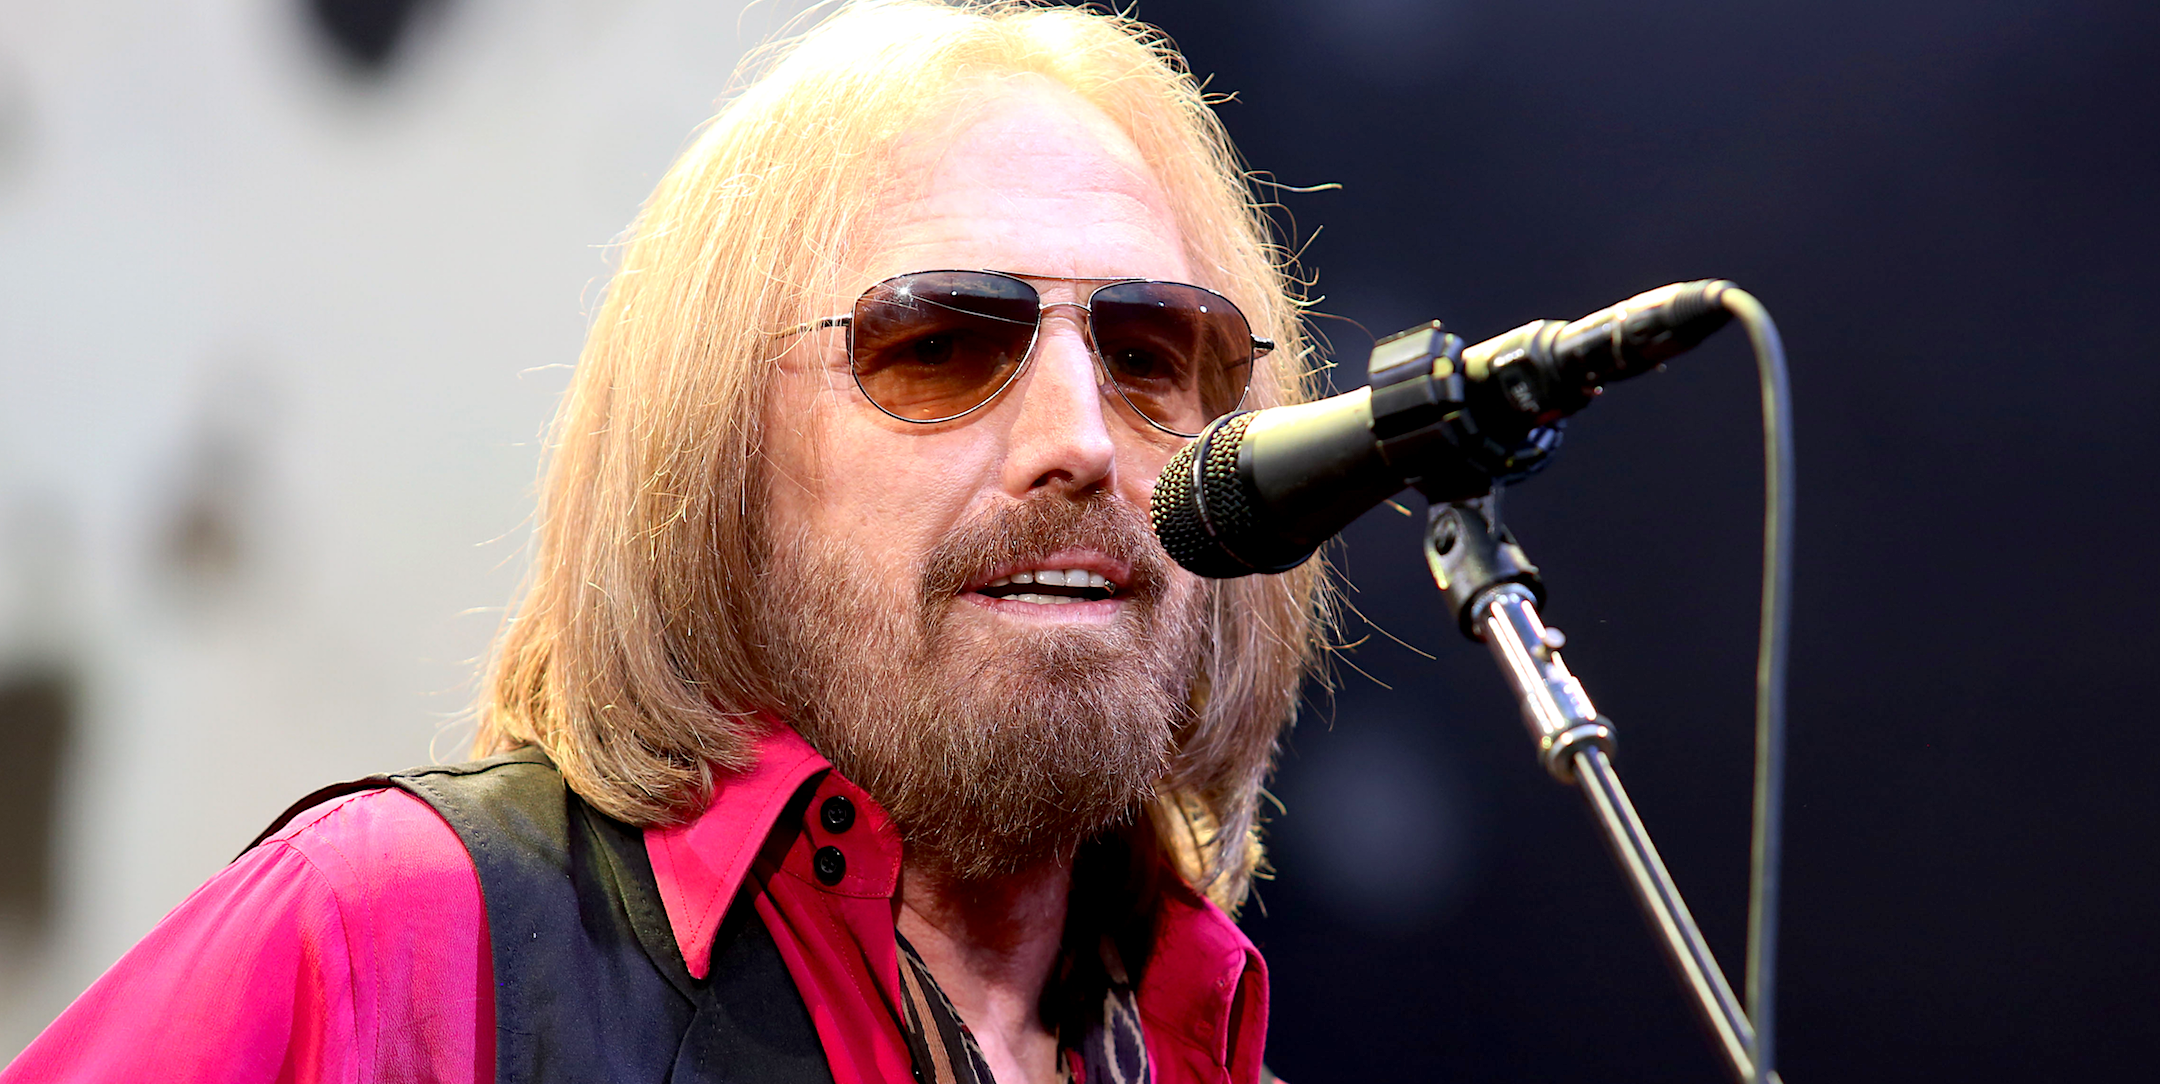 Music, celebs, Tom Petty, tom petty and the heartbreakers, 2017 concert